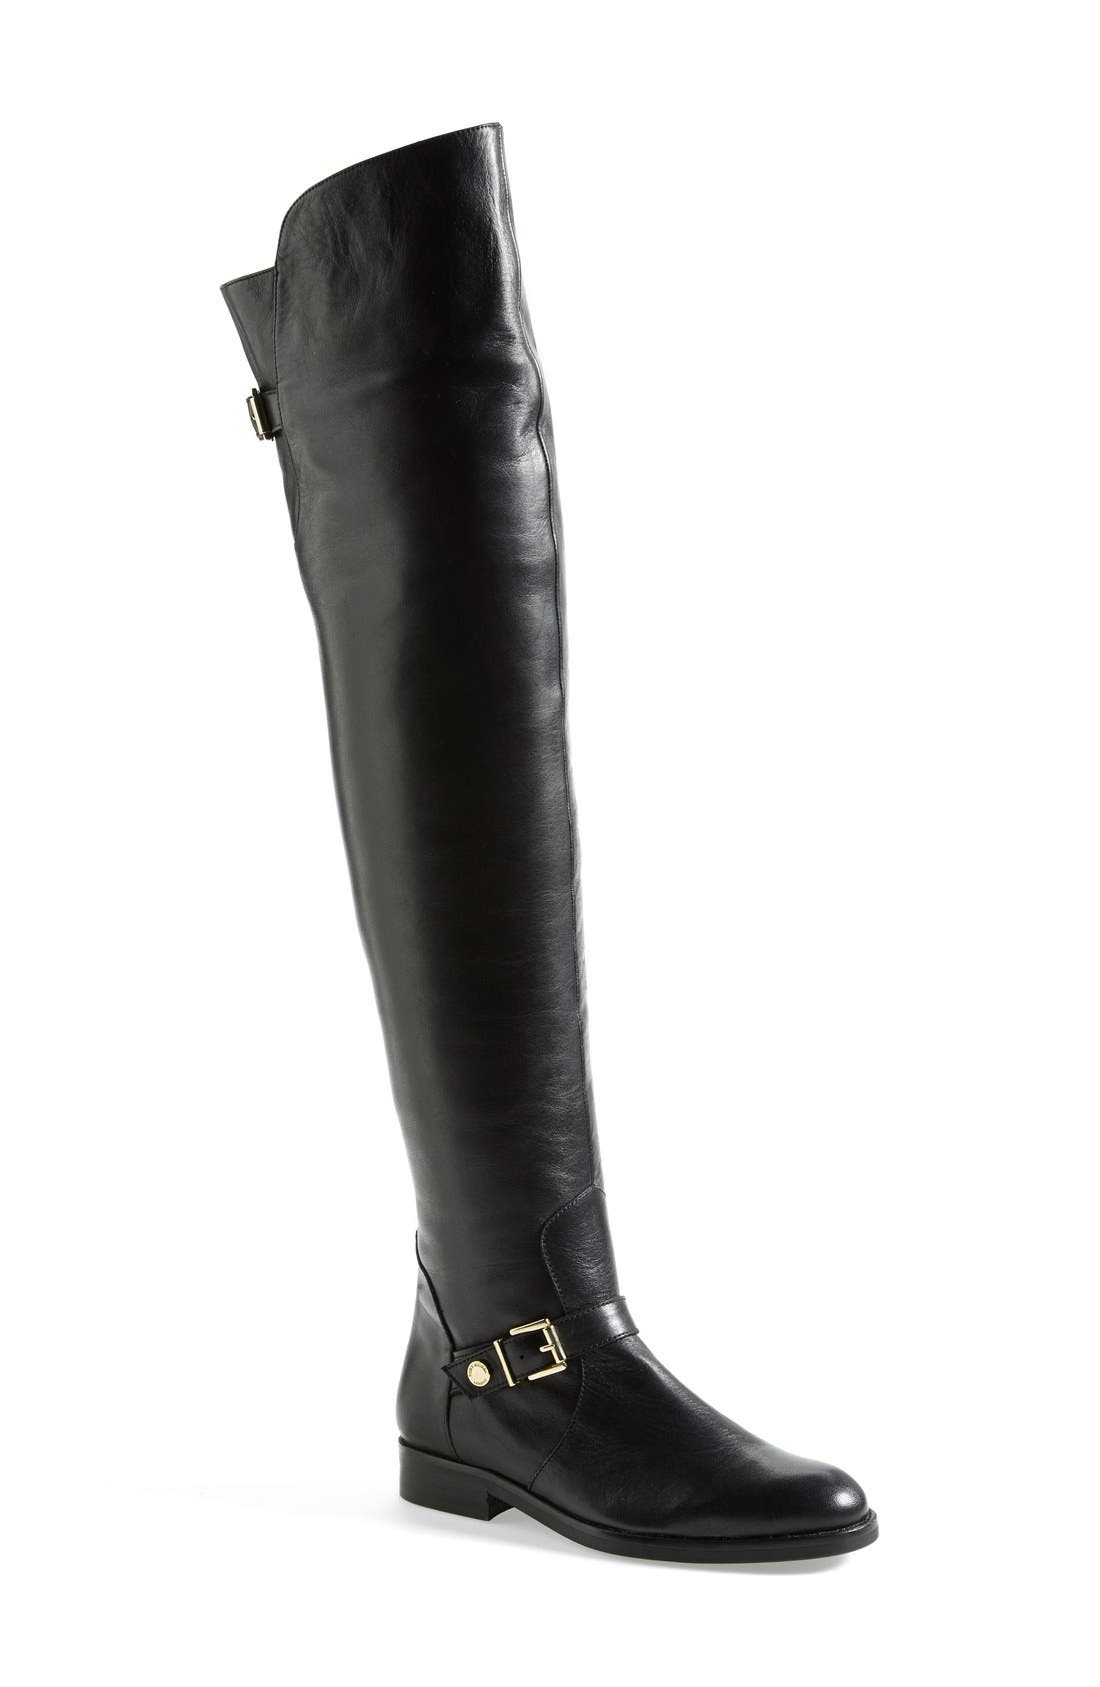 Main Image - Kurt Geiger London 'Rowland' Over the Knee Boot (Women)